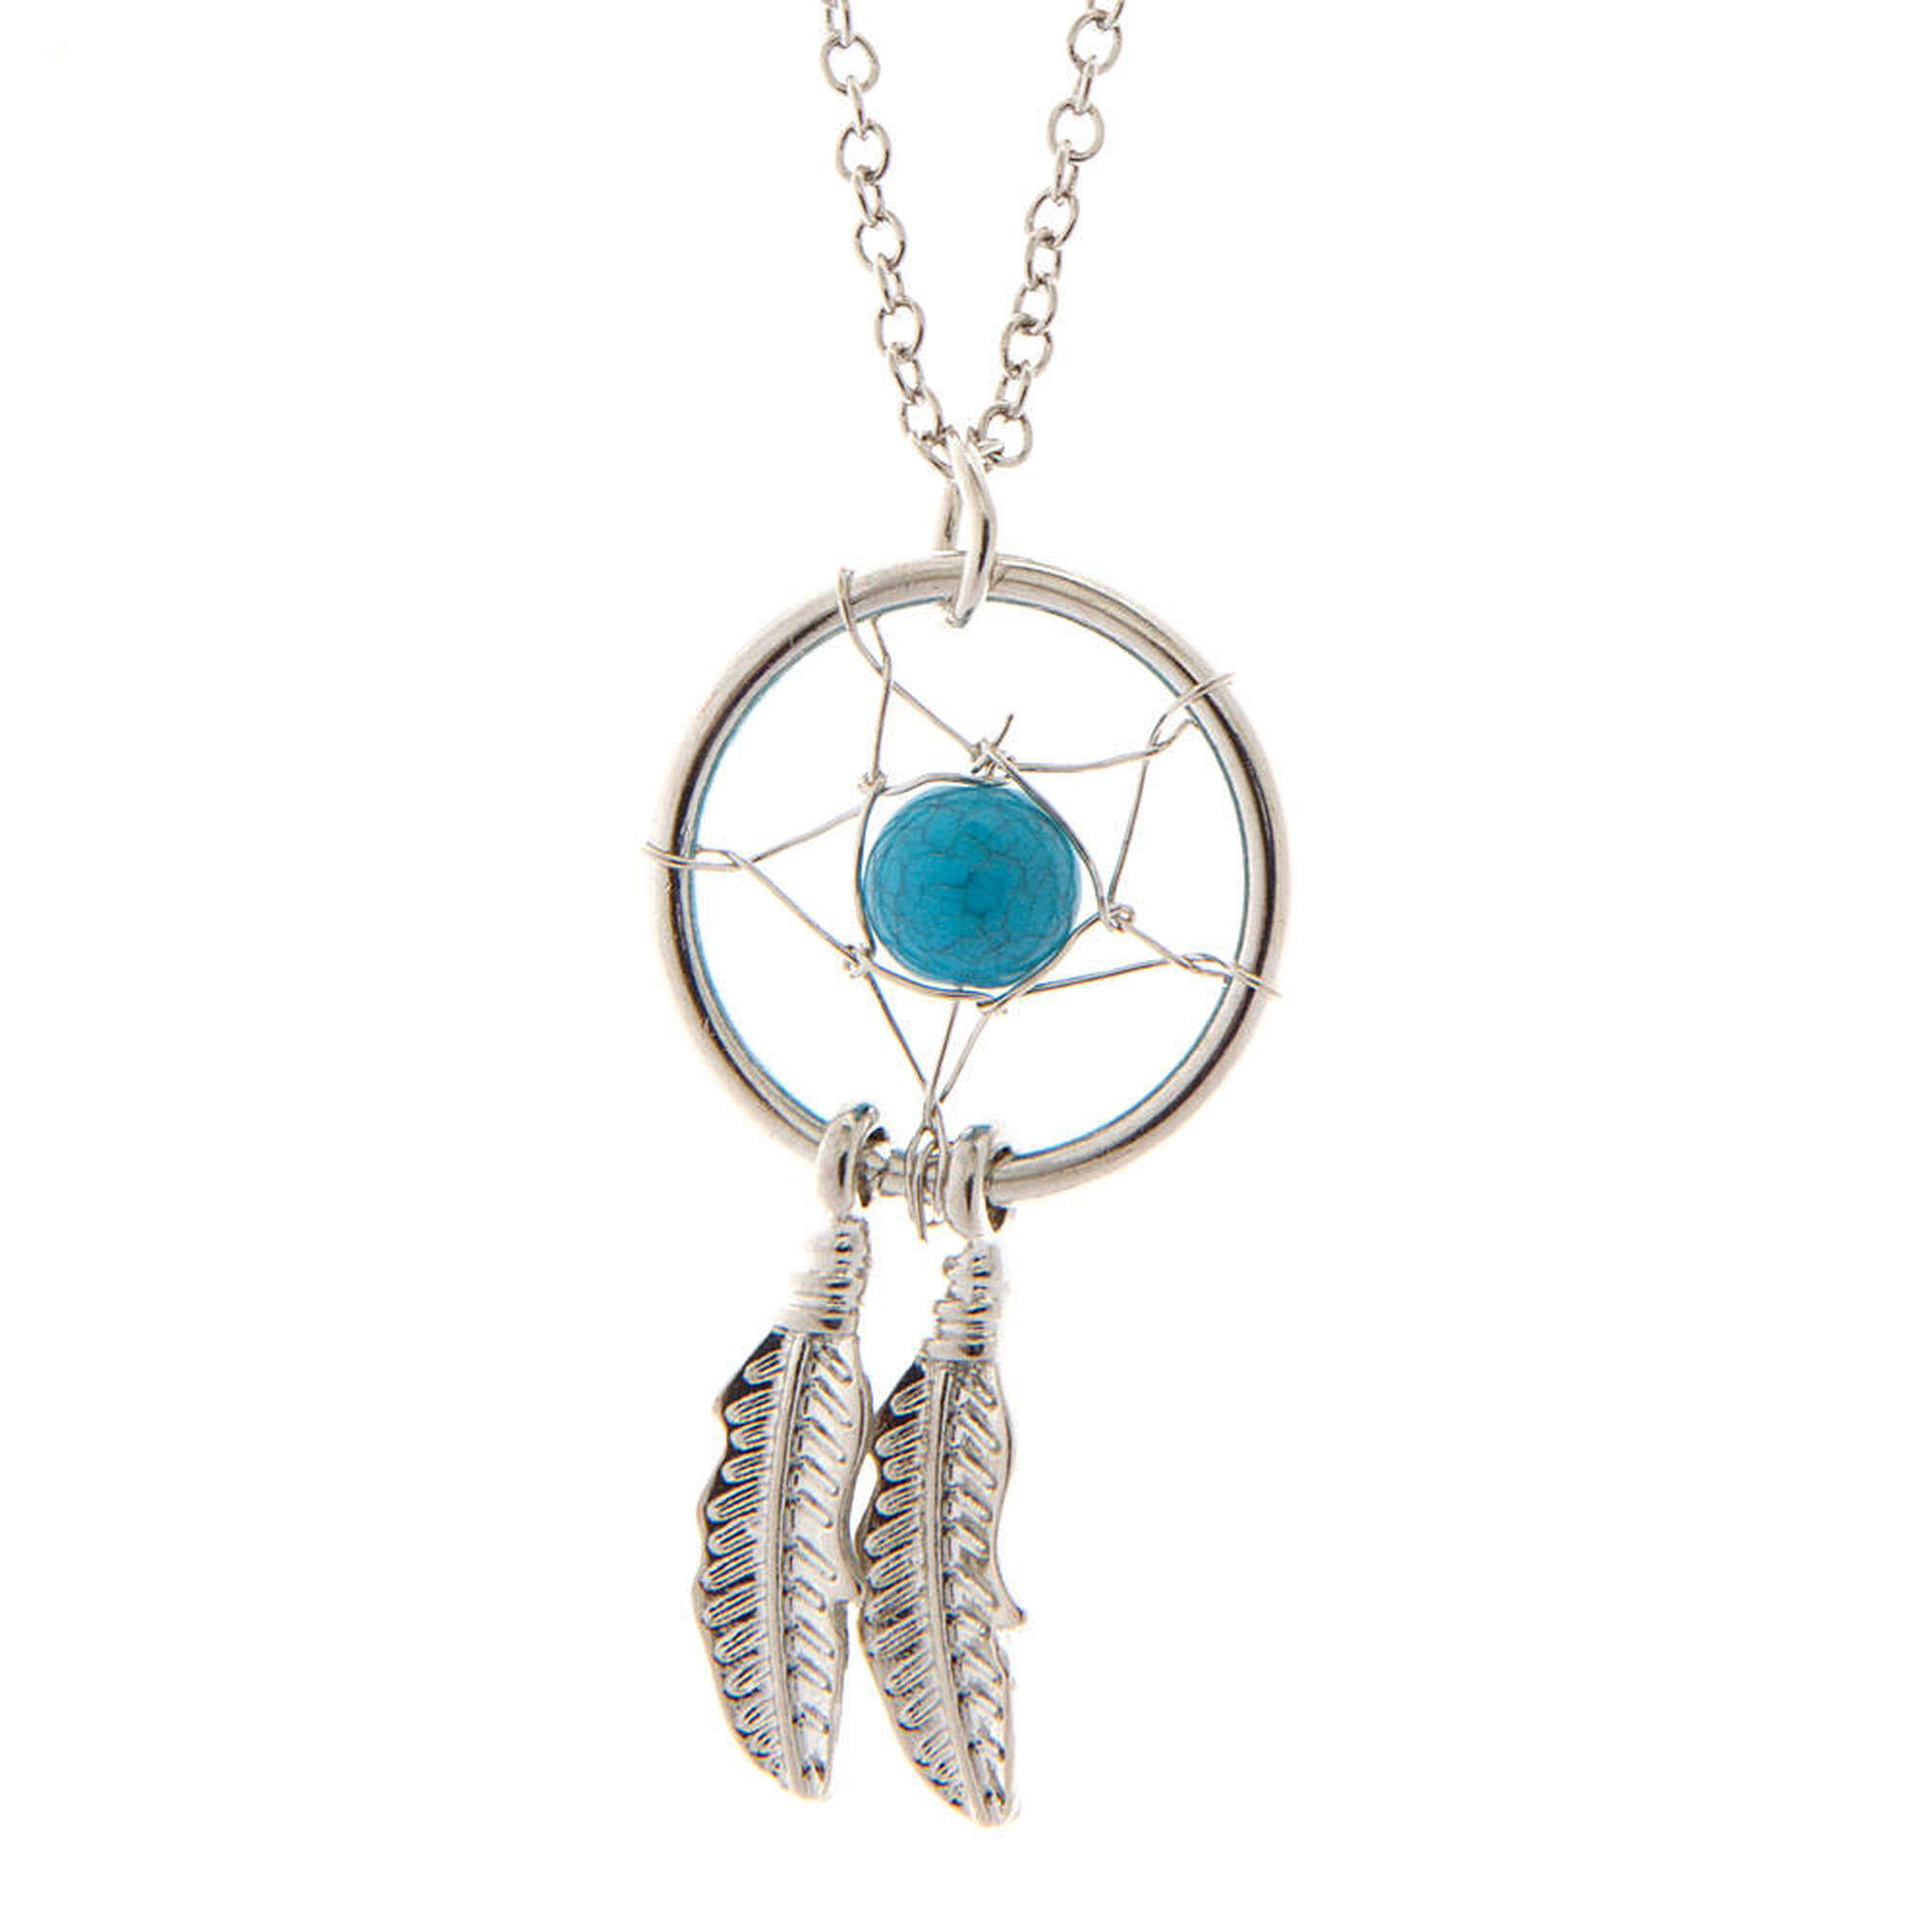 Silver and turquoise bead dream catcher pendant necklace claires us silver and turquoise bead dream catcher pendant necklace aloadofball Images